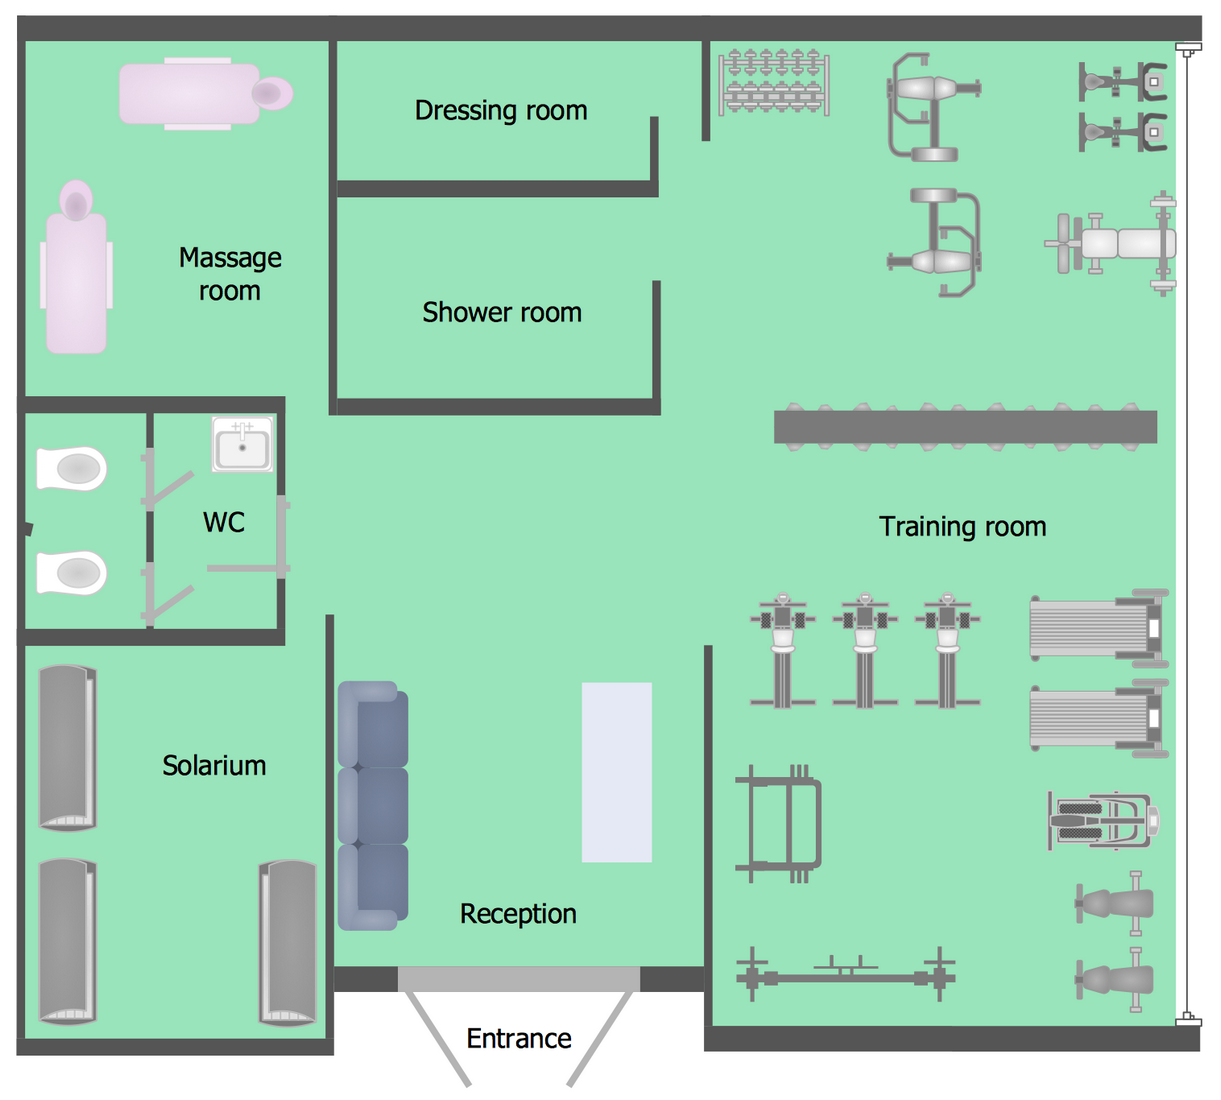 Gym and spa area plans solution Room layout builder